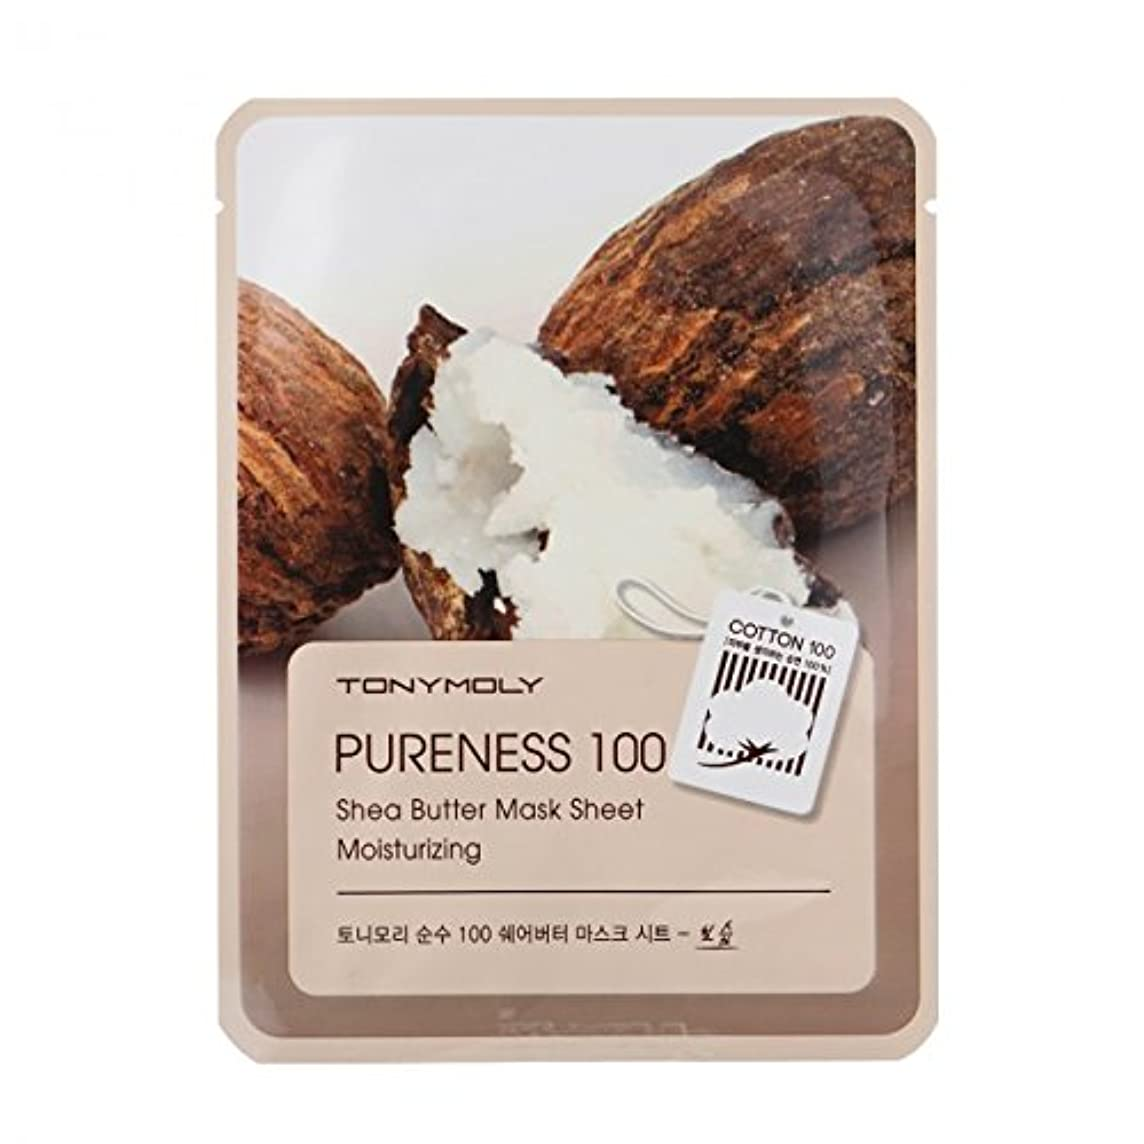 作詞家商品積極的に(6 Pack) TONYMOLY Pureness 100 Shea Butter Mask Sheet Moisturizing (並行輸入品)